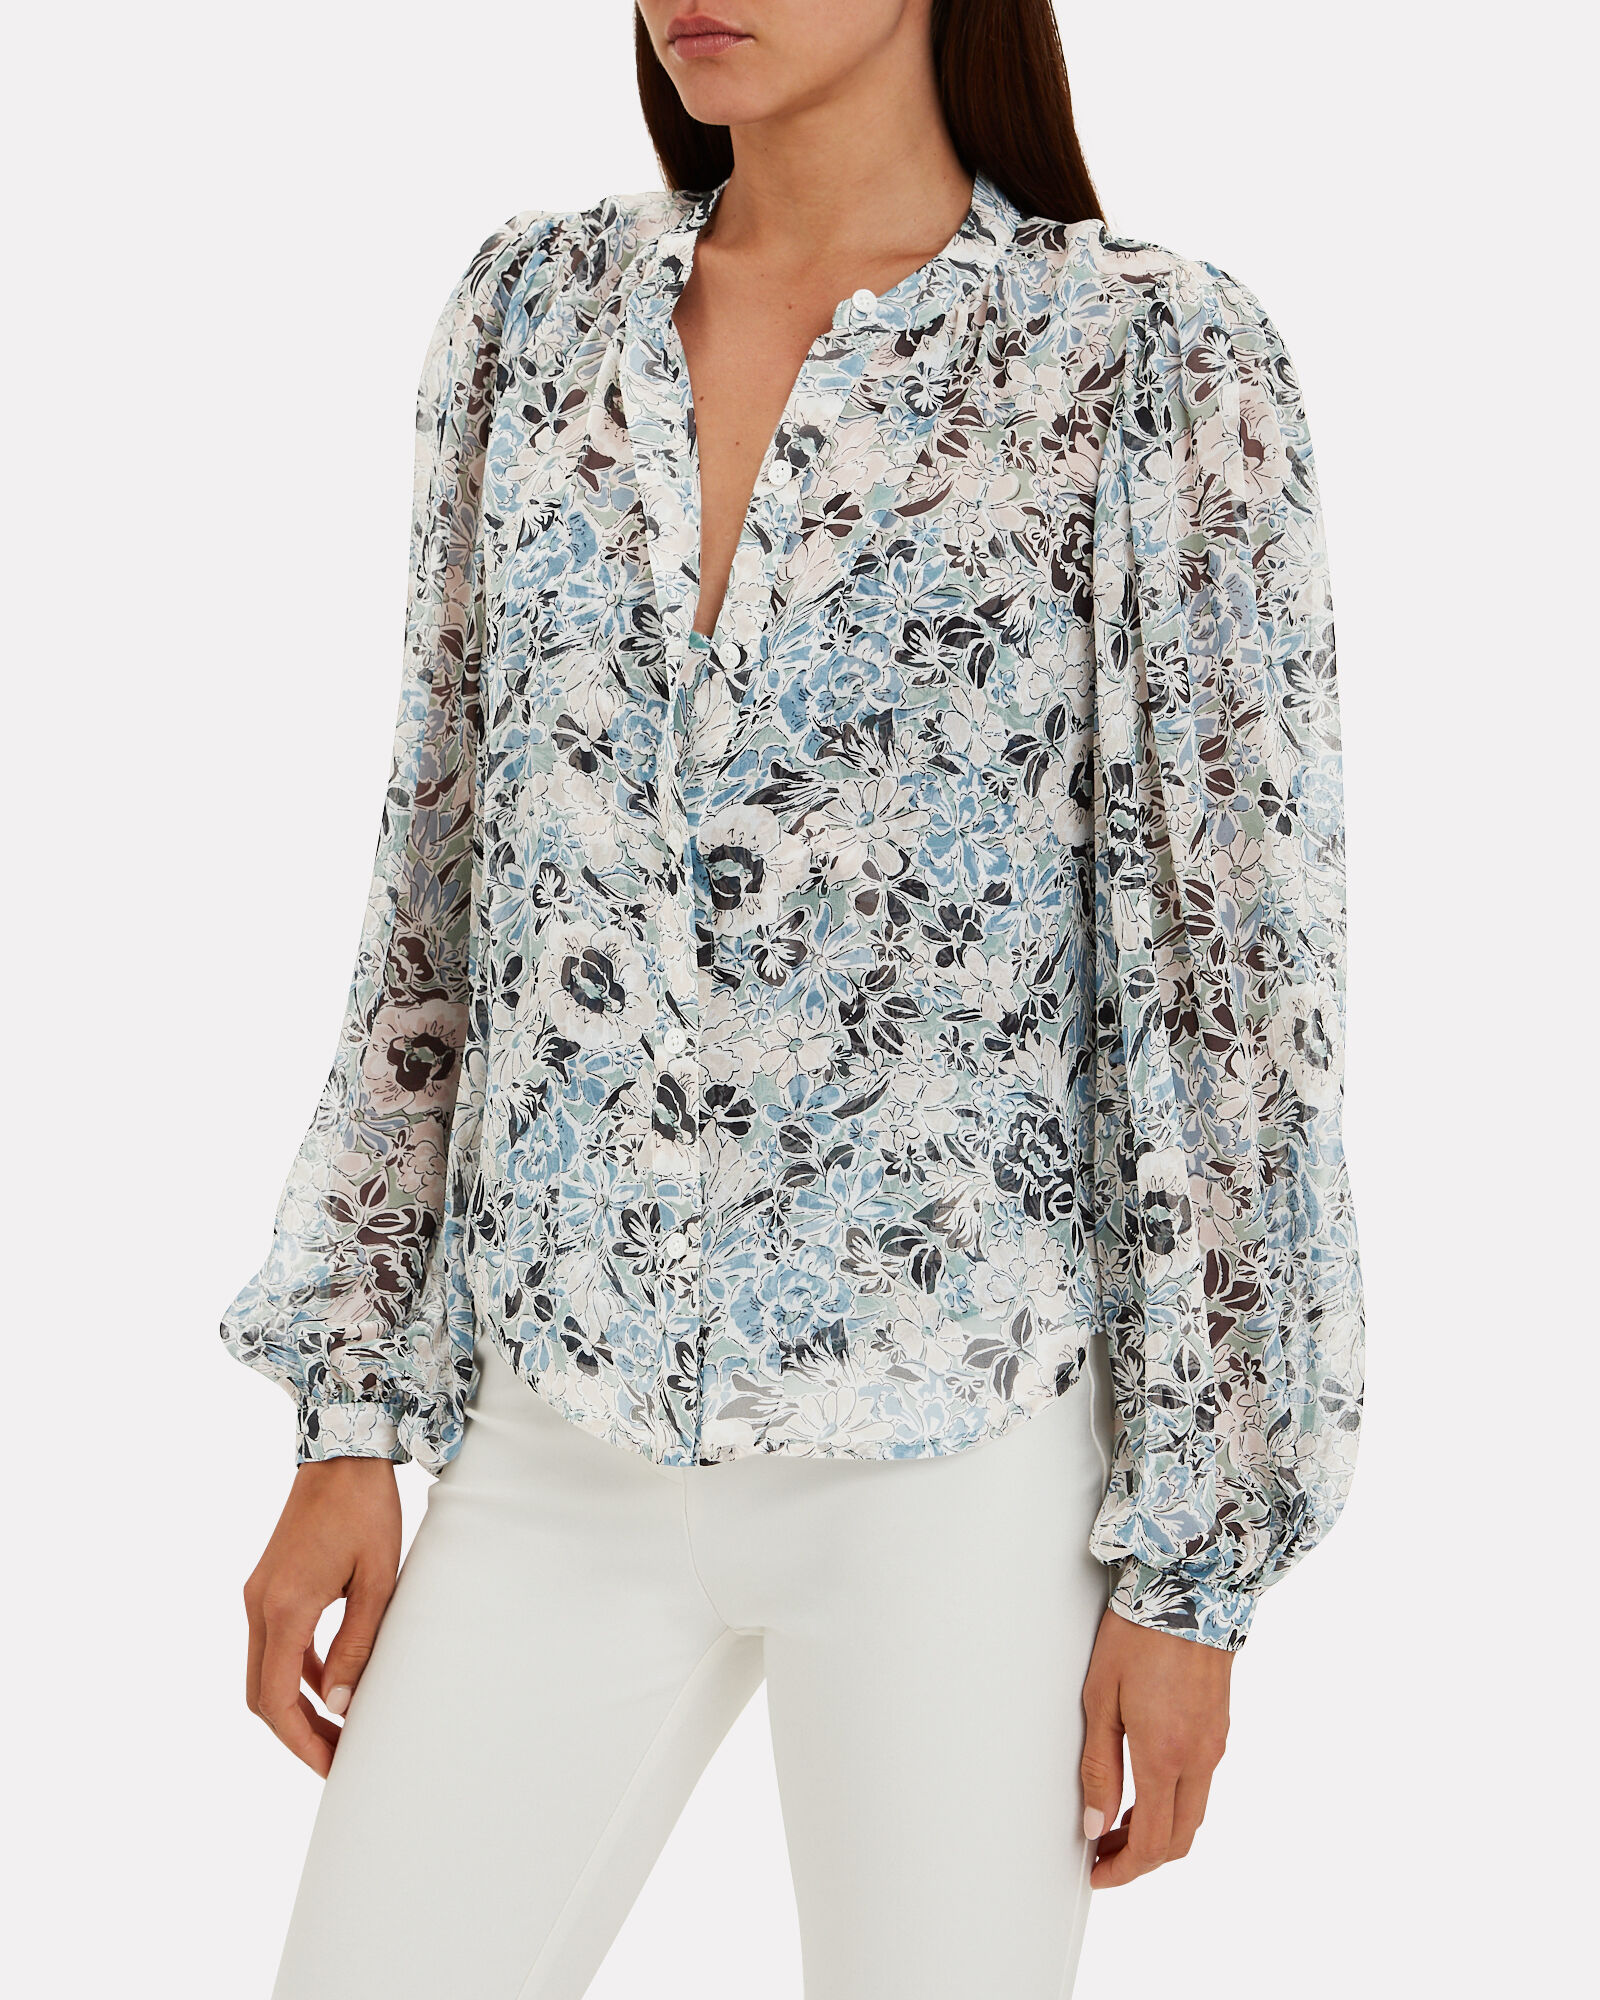 Ashlynn Silk Floral Blouse, BLUE/WHITE, hi-res